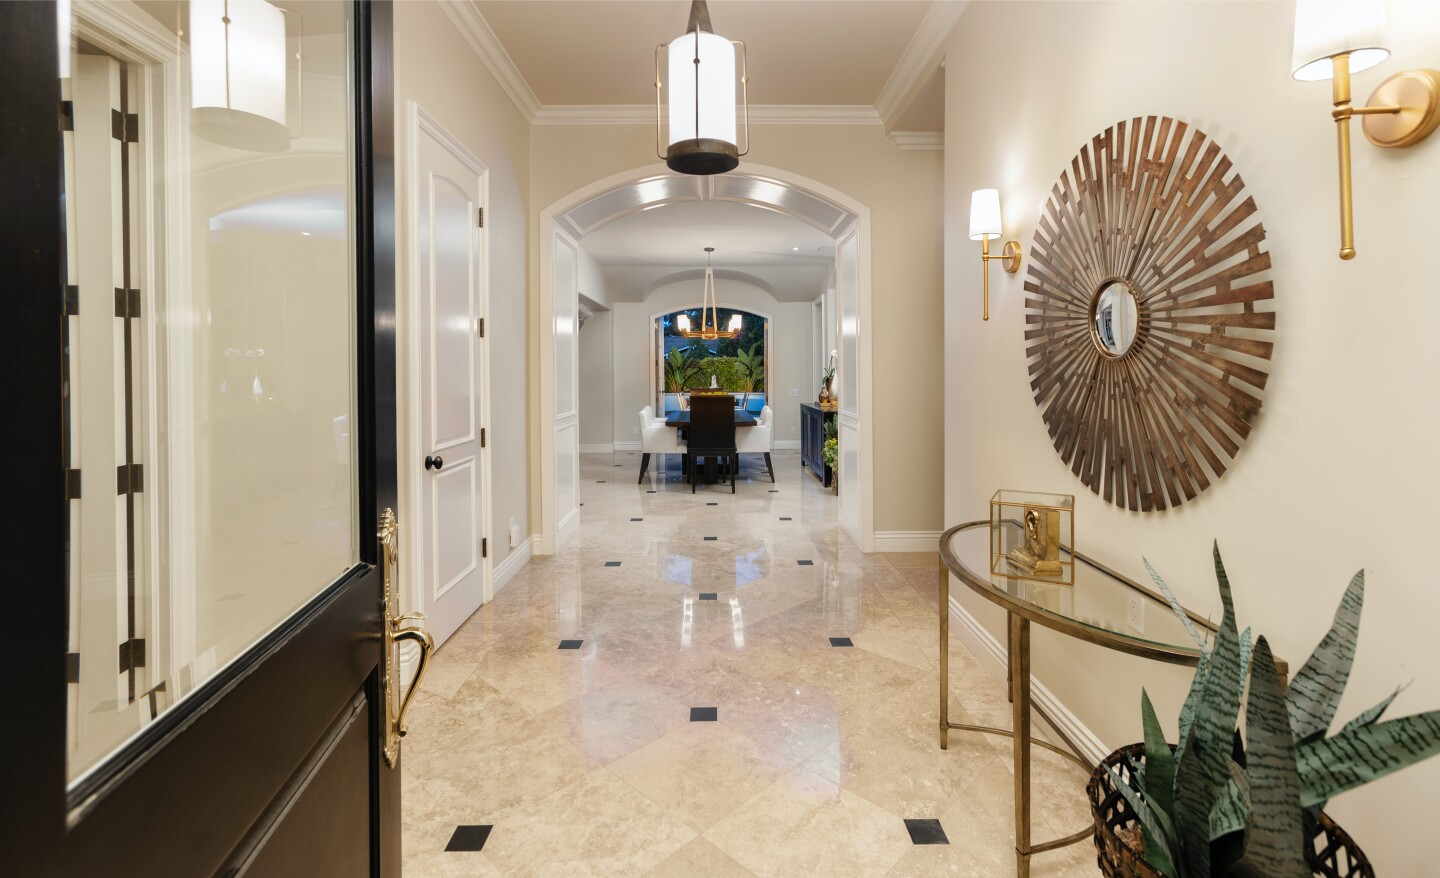 The single-story home sits about two miles from the ocean in the guard-gated golf course community of Big Canyon.